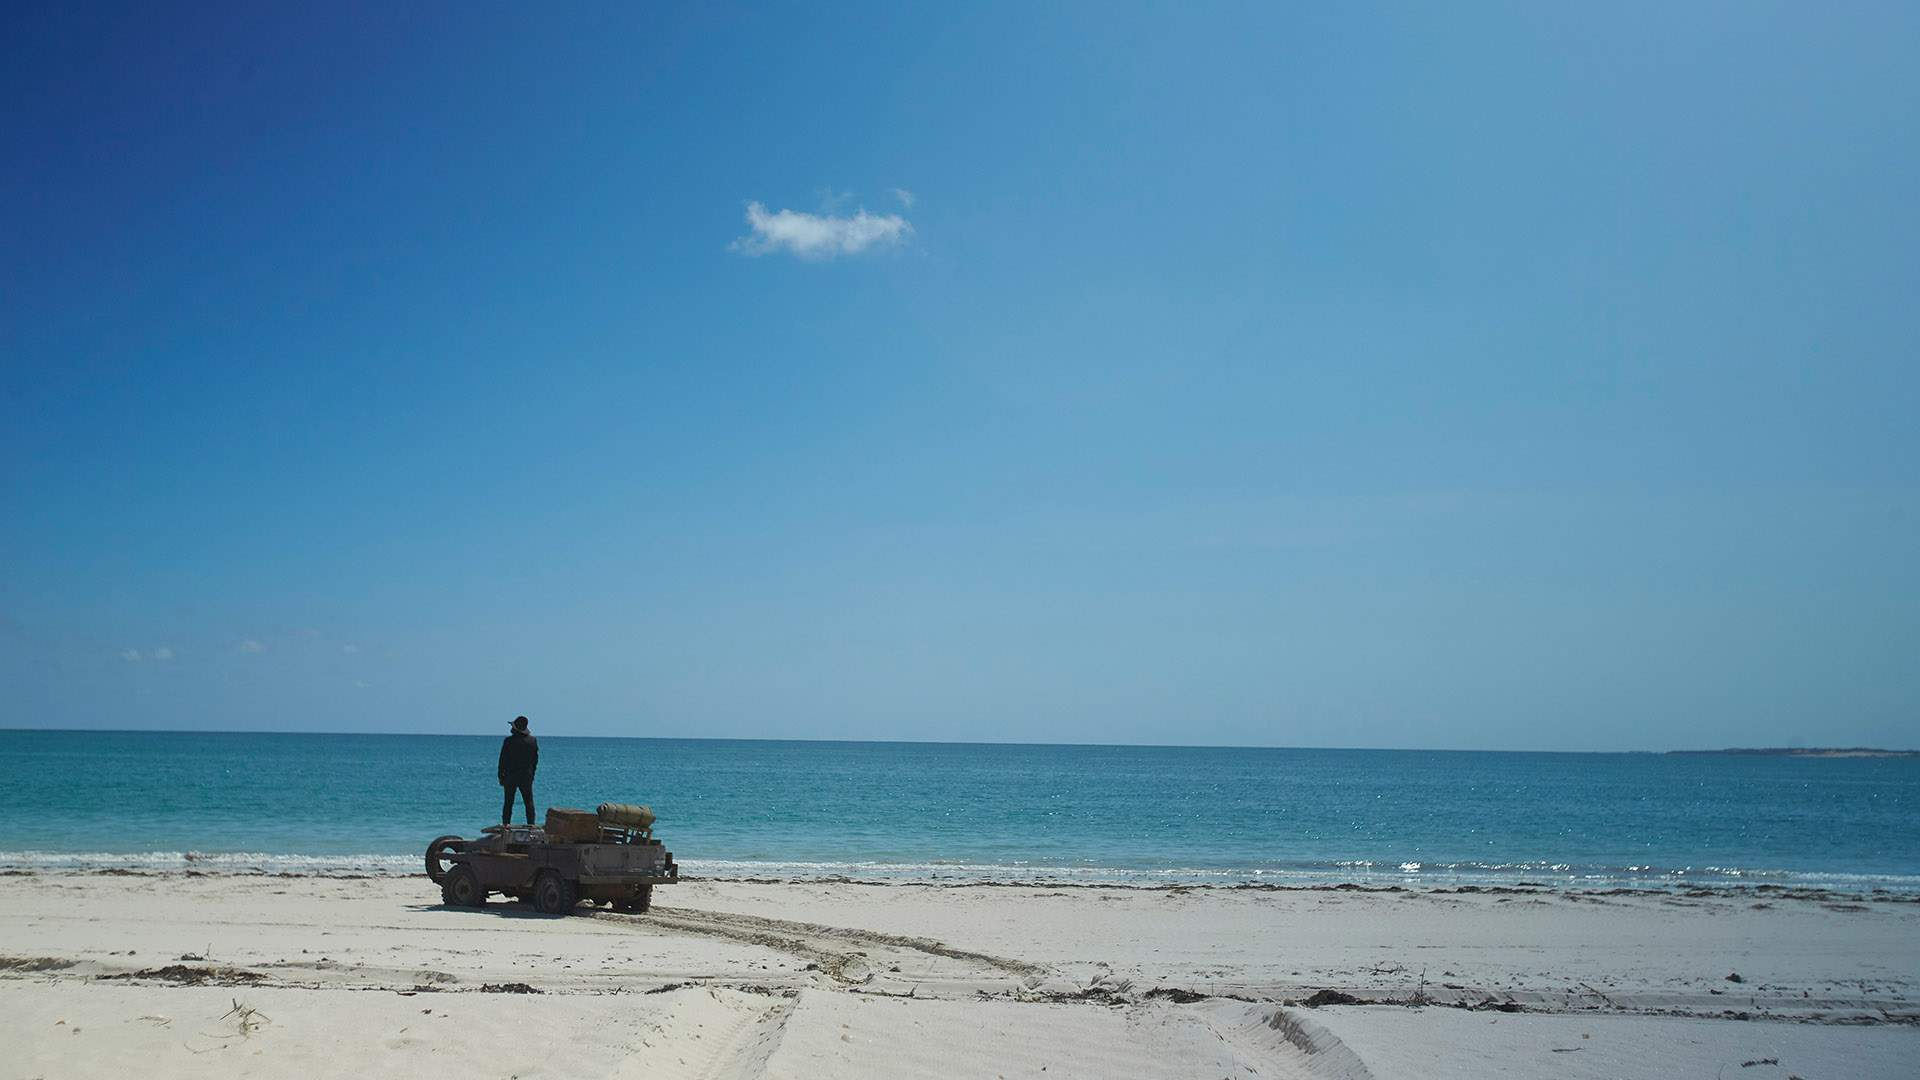 SBS's New Documentary 'The Beach' Is the Thoughtful and Scenic Isolation Viewing We Need Right Now